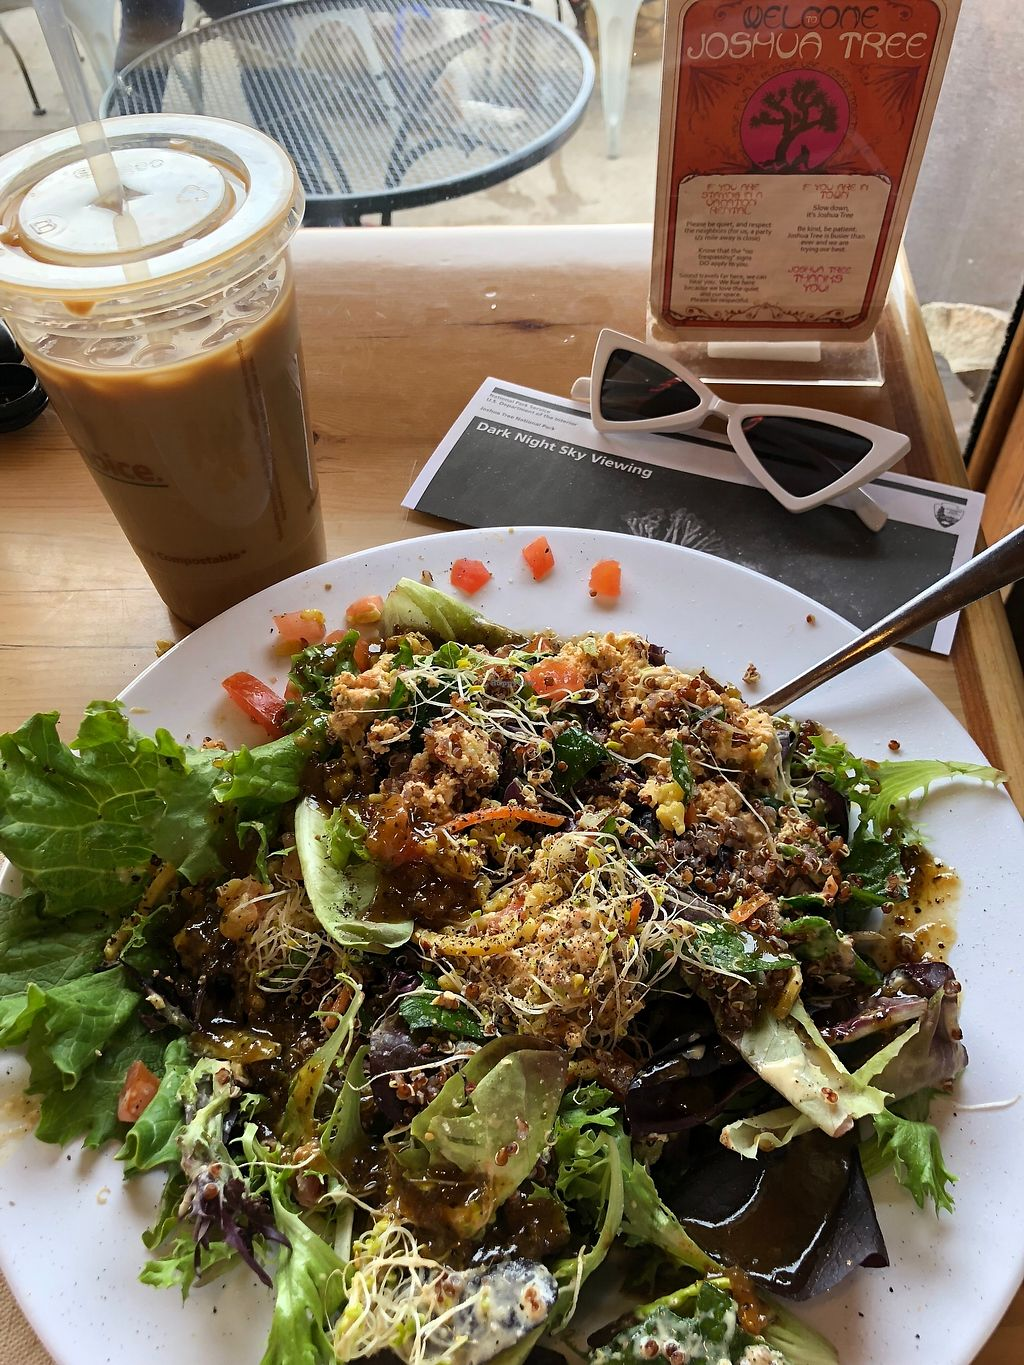 """Photo of Joshua Tree Health Foods  by <a href=""""/members/profile/defcasoul"""">defcasoul</a> <br/>YUM <br/> March 15, 2018  - <a href='/contact/abuse/image/4535/370772'>Report</a>"""